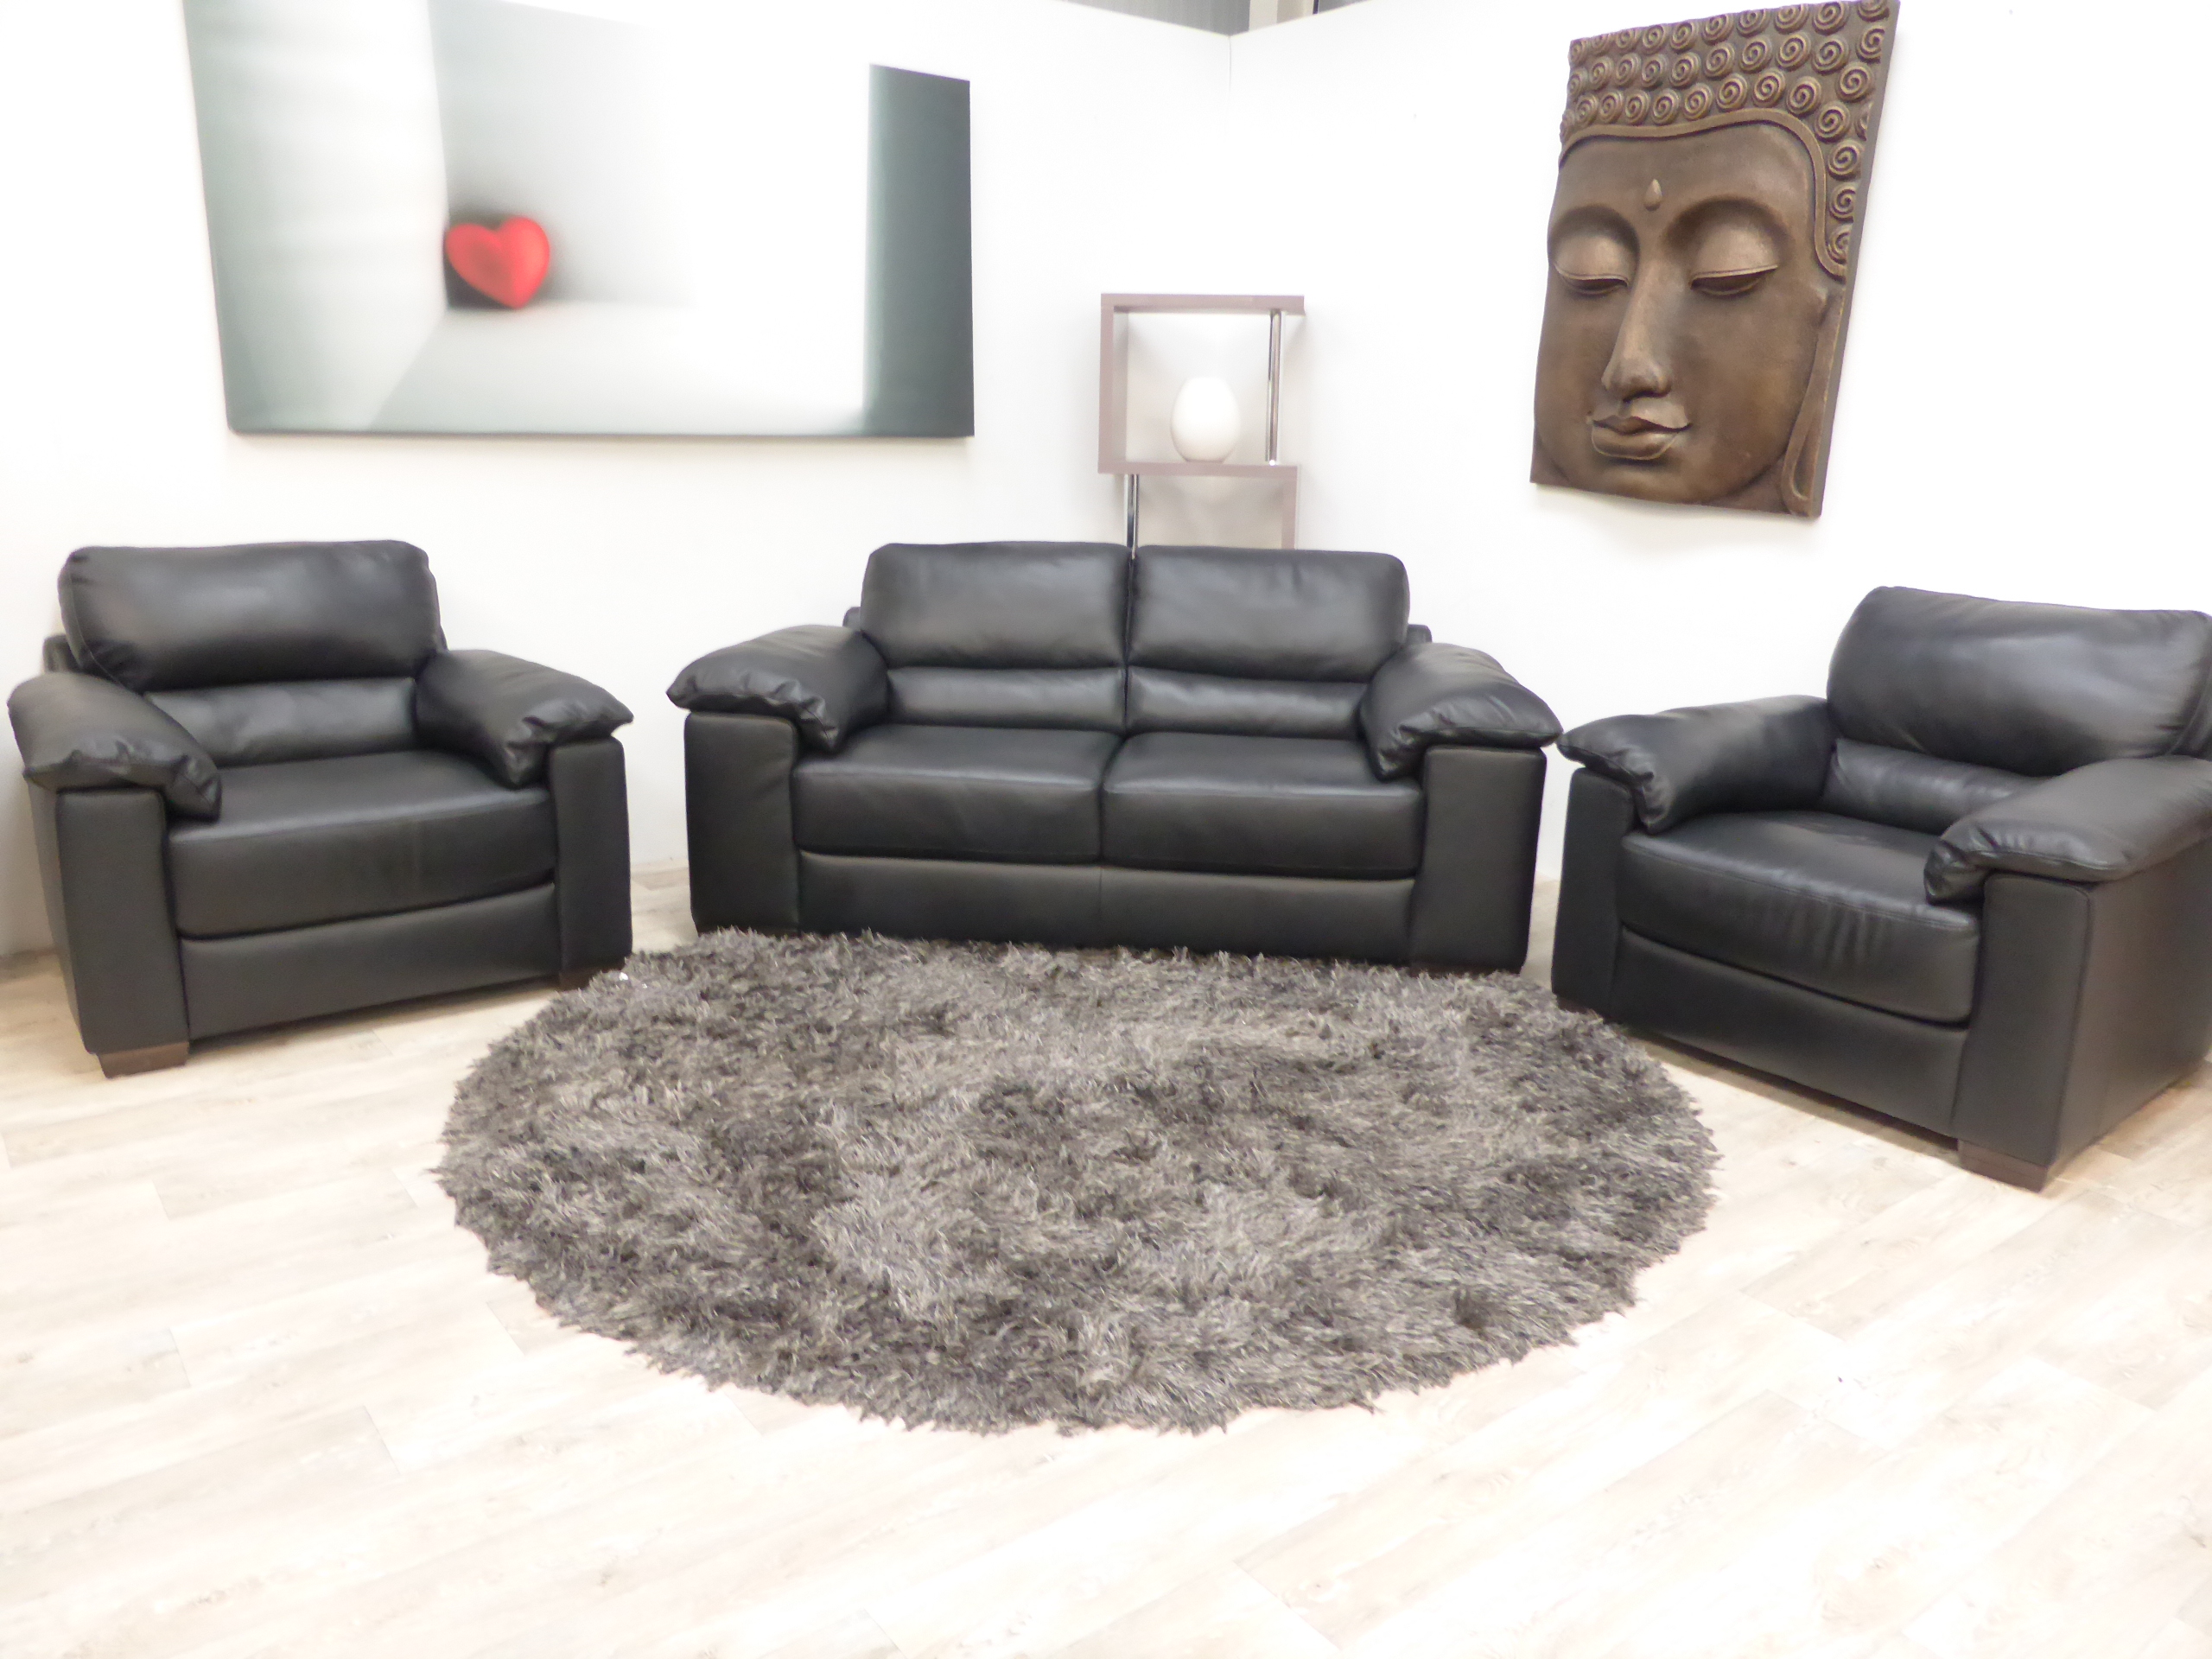 natuzzi arona 2 seater leather sofa bed sleeper under 500 private label santeramo seat and chairs